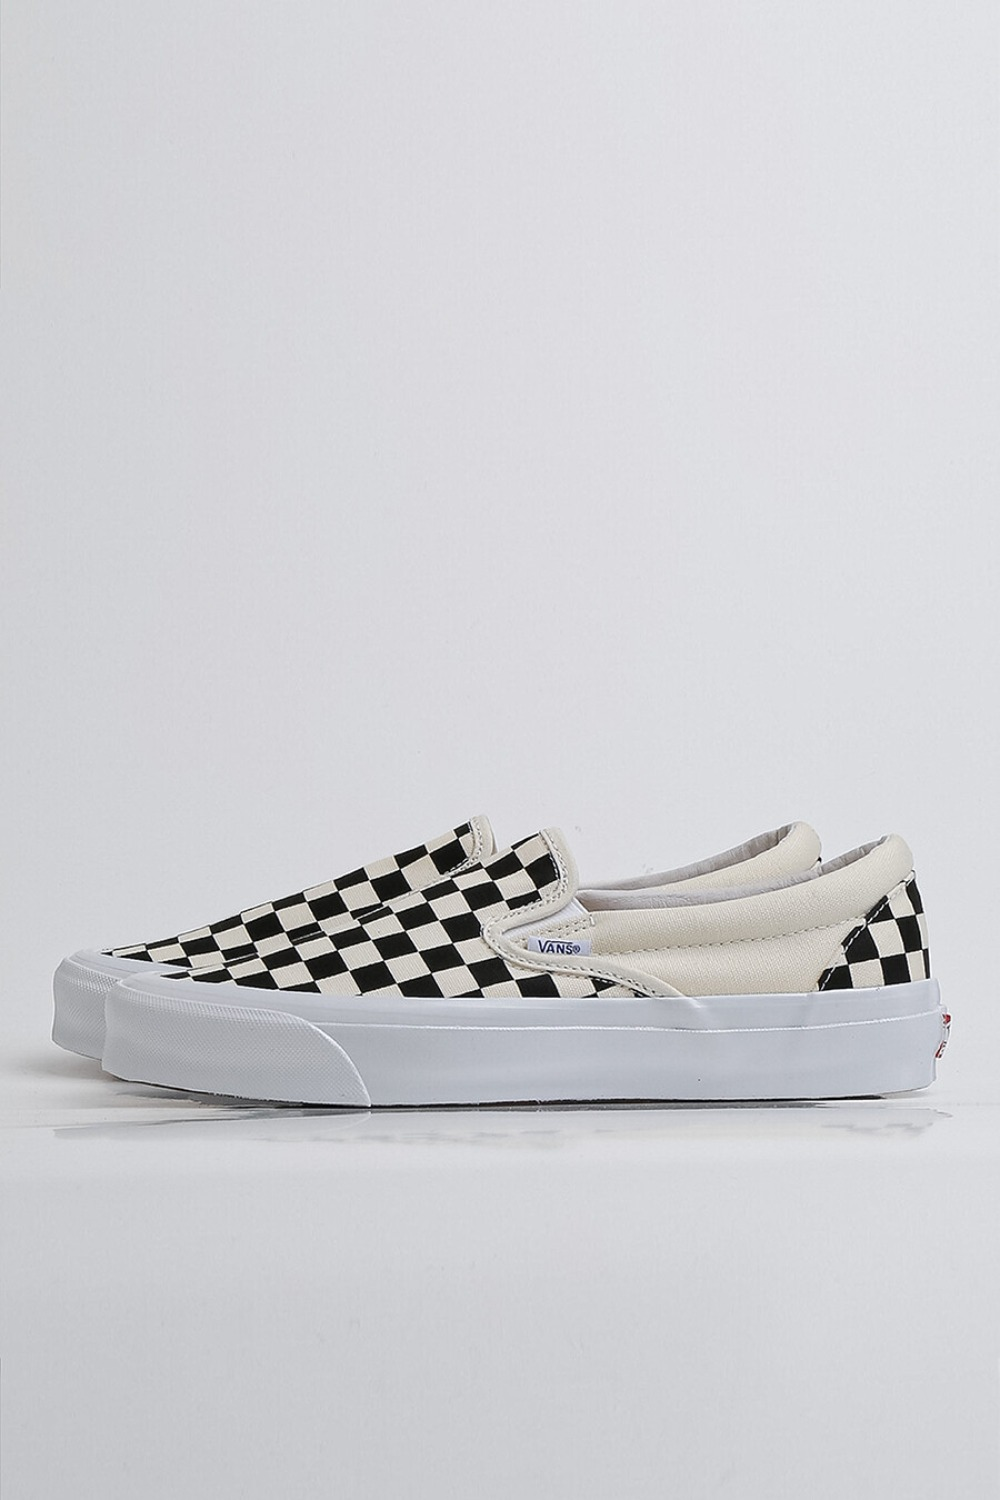 (RESTOCK)OG Classic Slip-On LX(Canvas) CHECKERBOARD